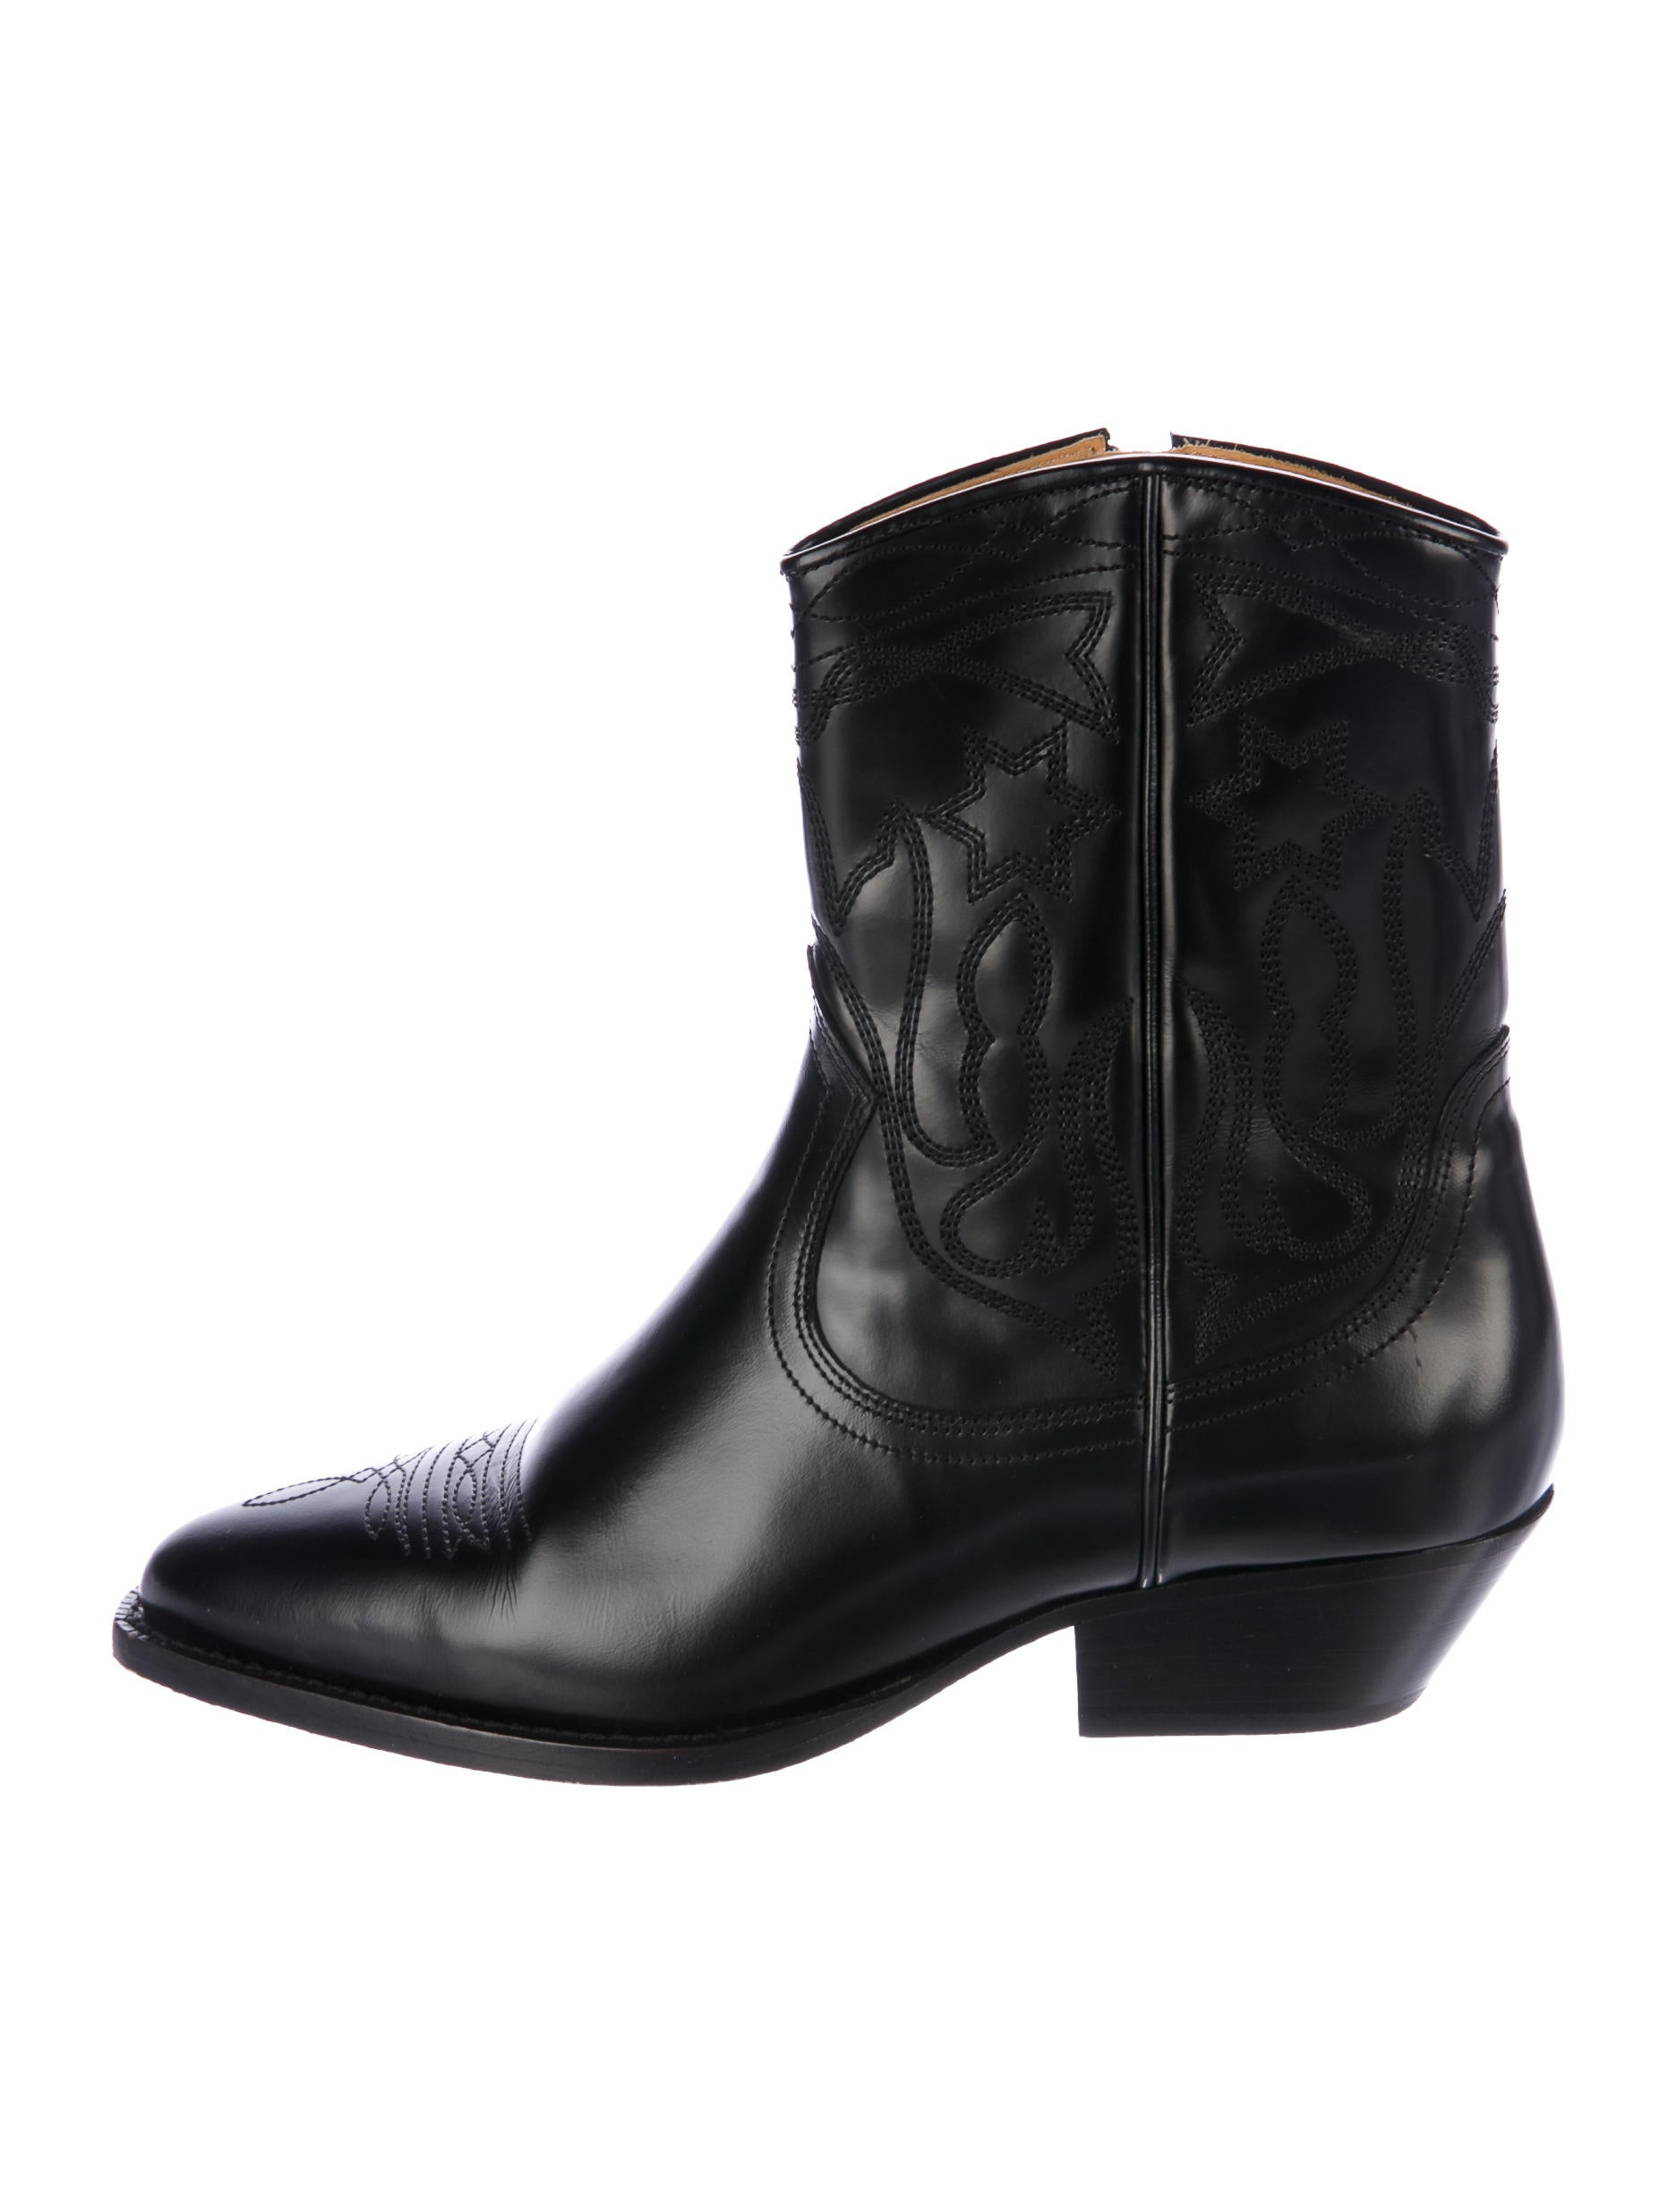 06941eb4a19 Jim Ankle Boots